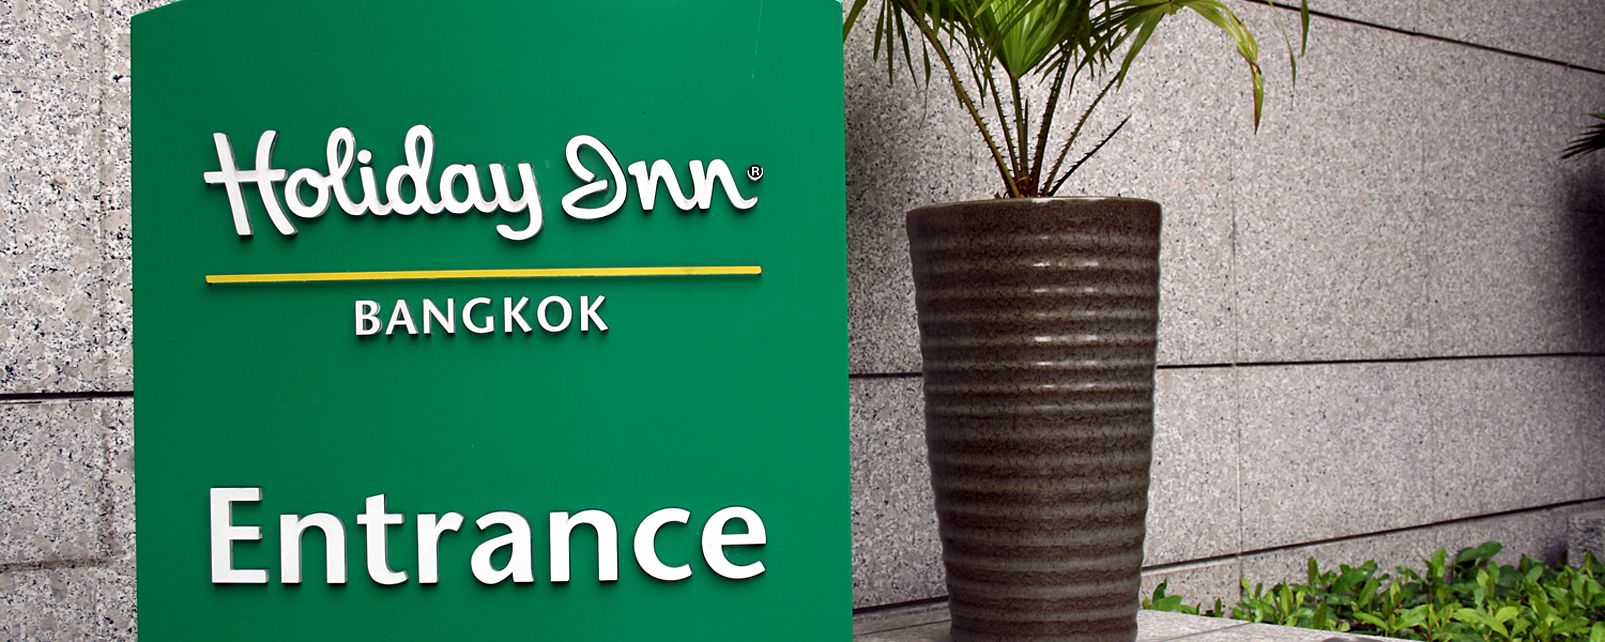 Hotel Holiday Inn Bangkok